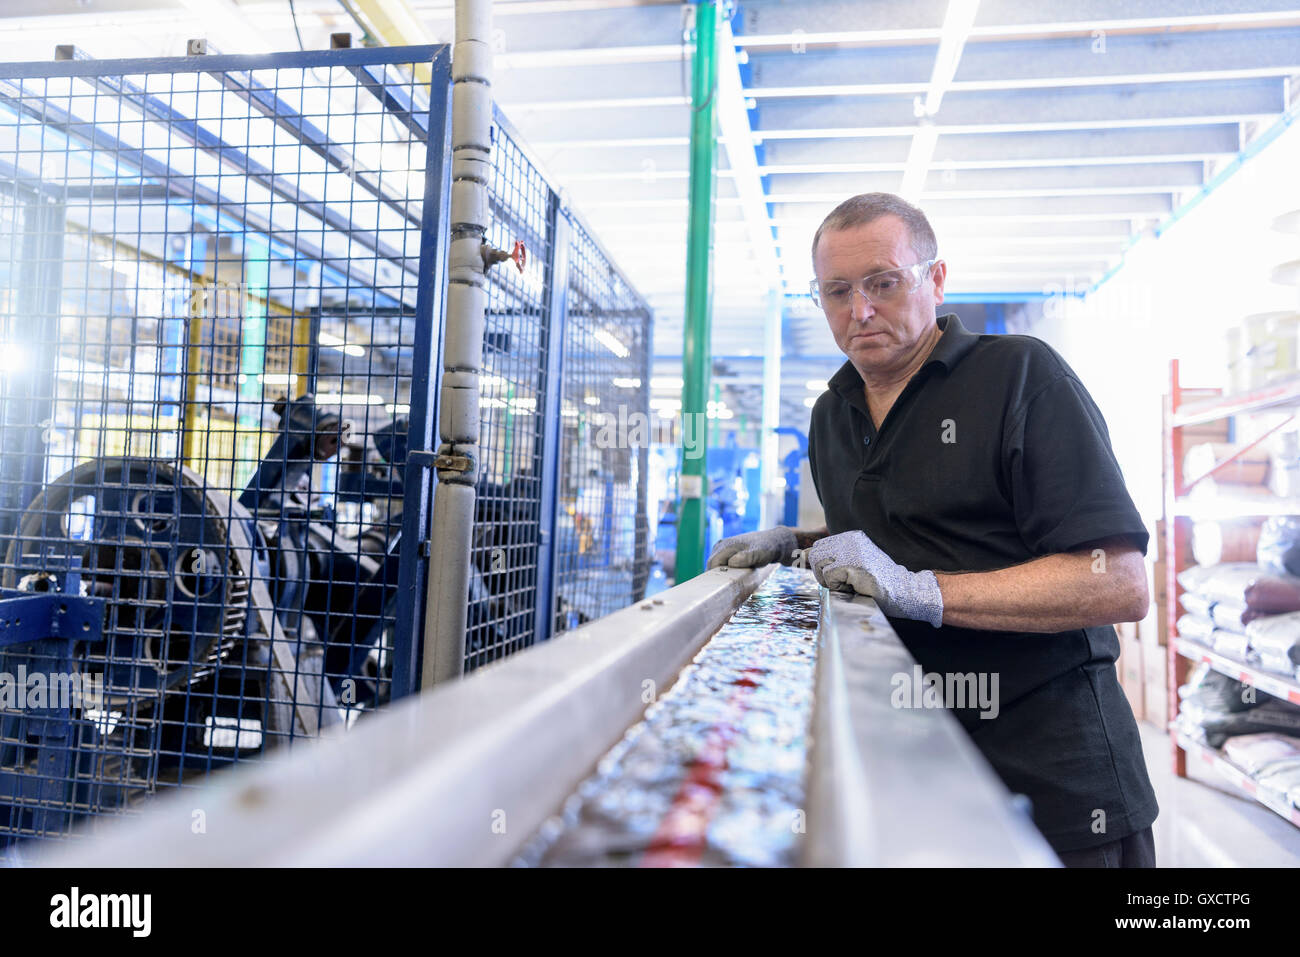 Worker running electrical cable through cooling bath in cable factory - Stock Image